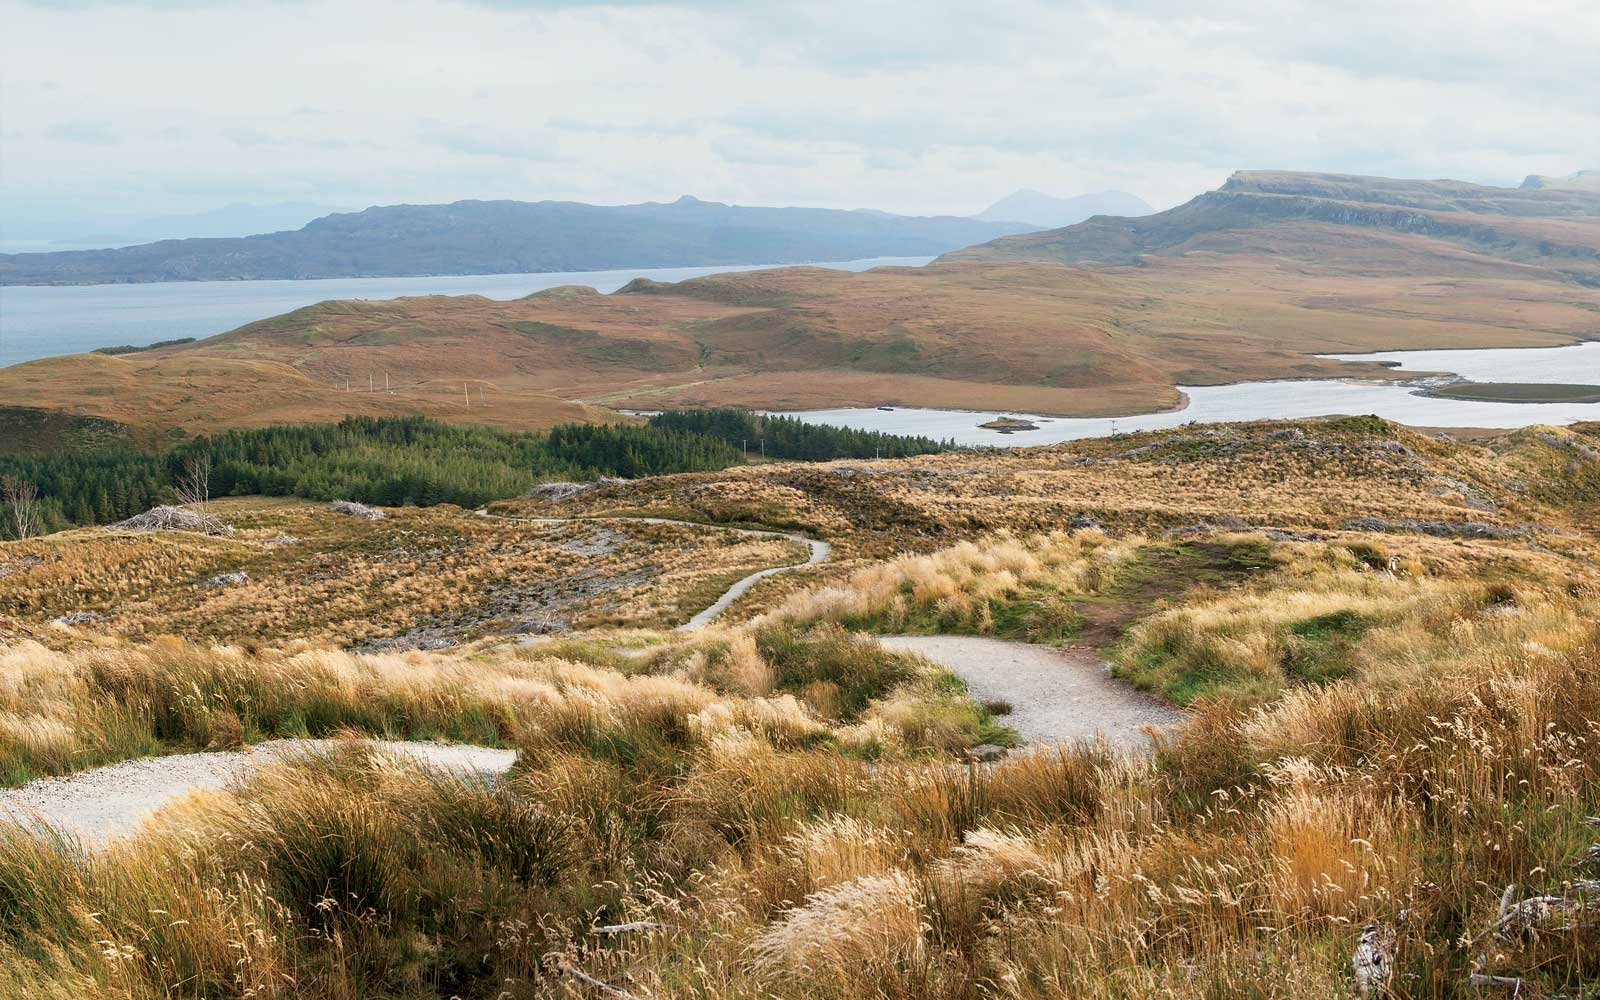 Pathway descending down from the Old Man Of Storr, a rocky hill on the Trotternish peninsula of the Isle of Skye in Scotland.